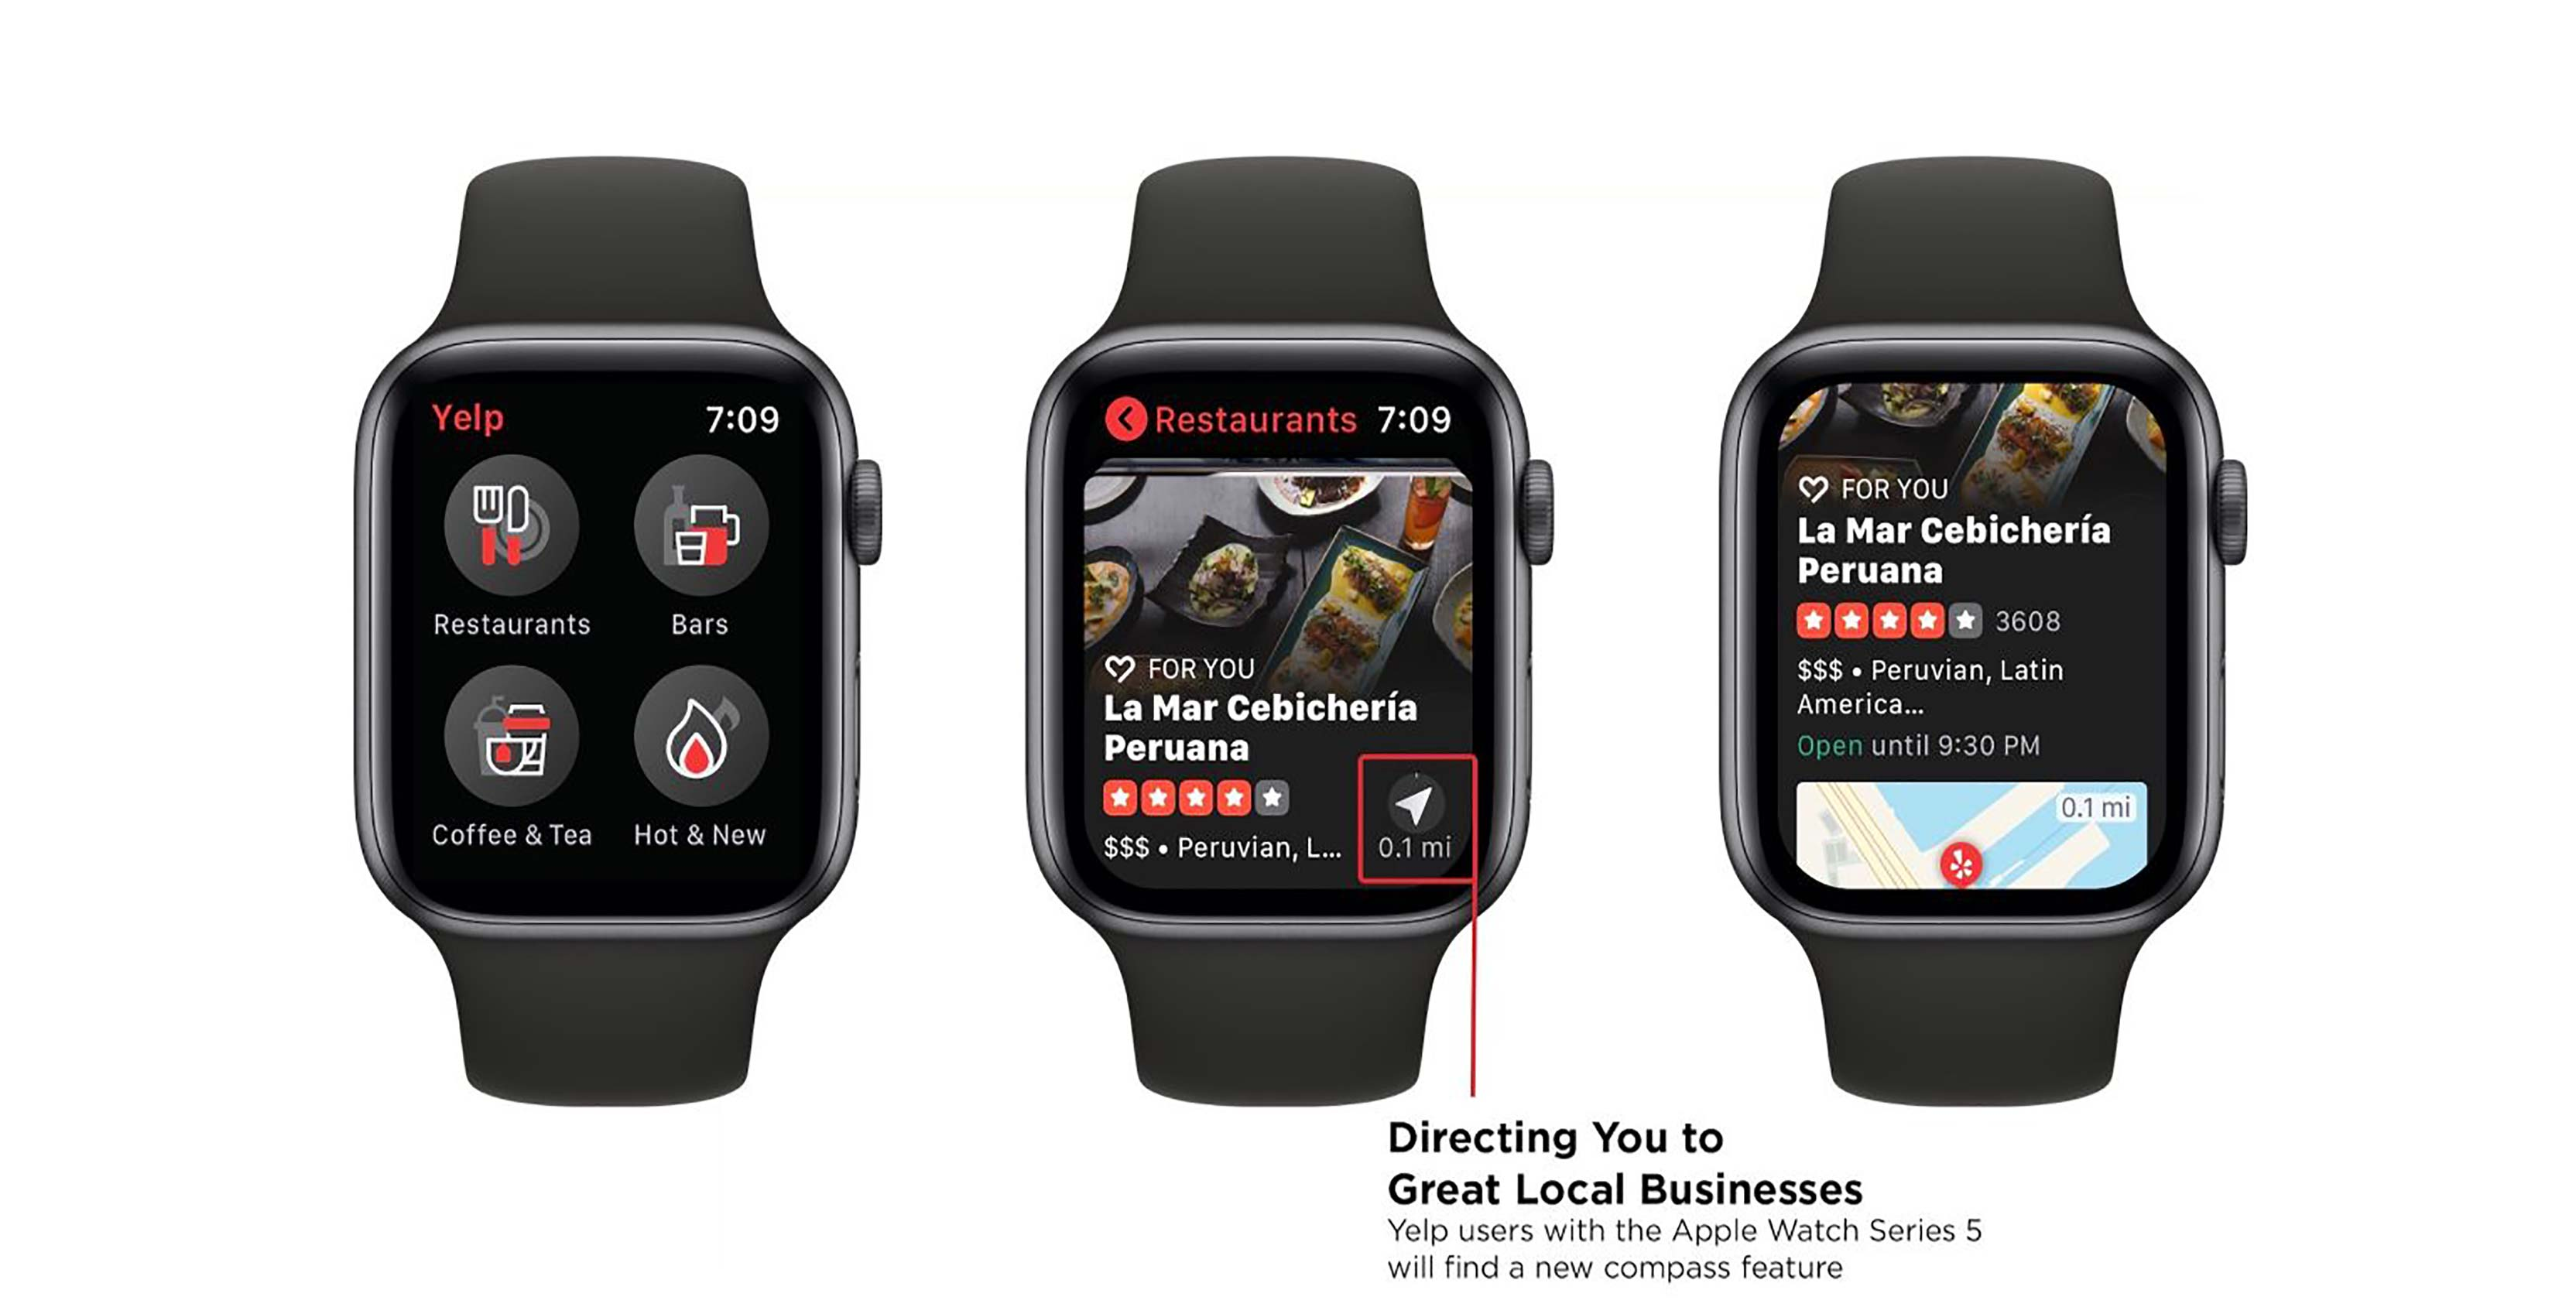 Yelp Apple Watch update adds compass integration to help find businesses